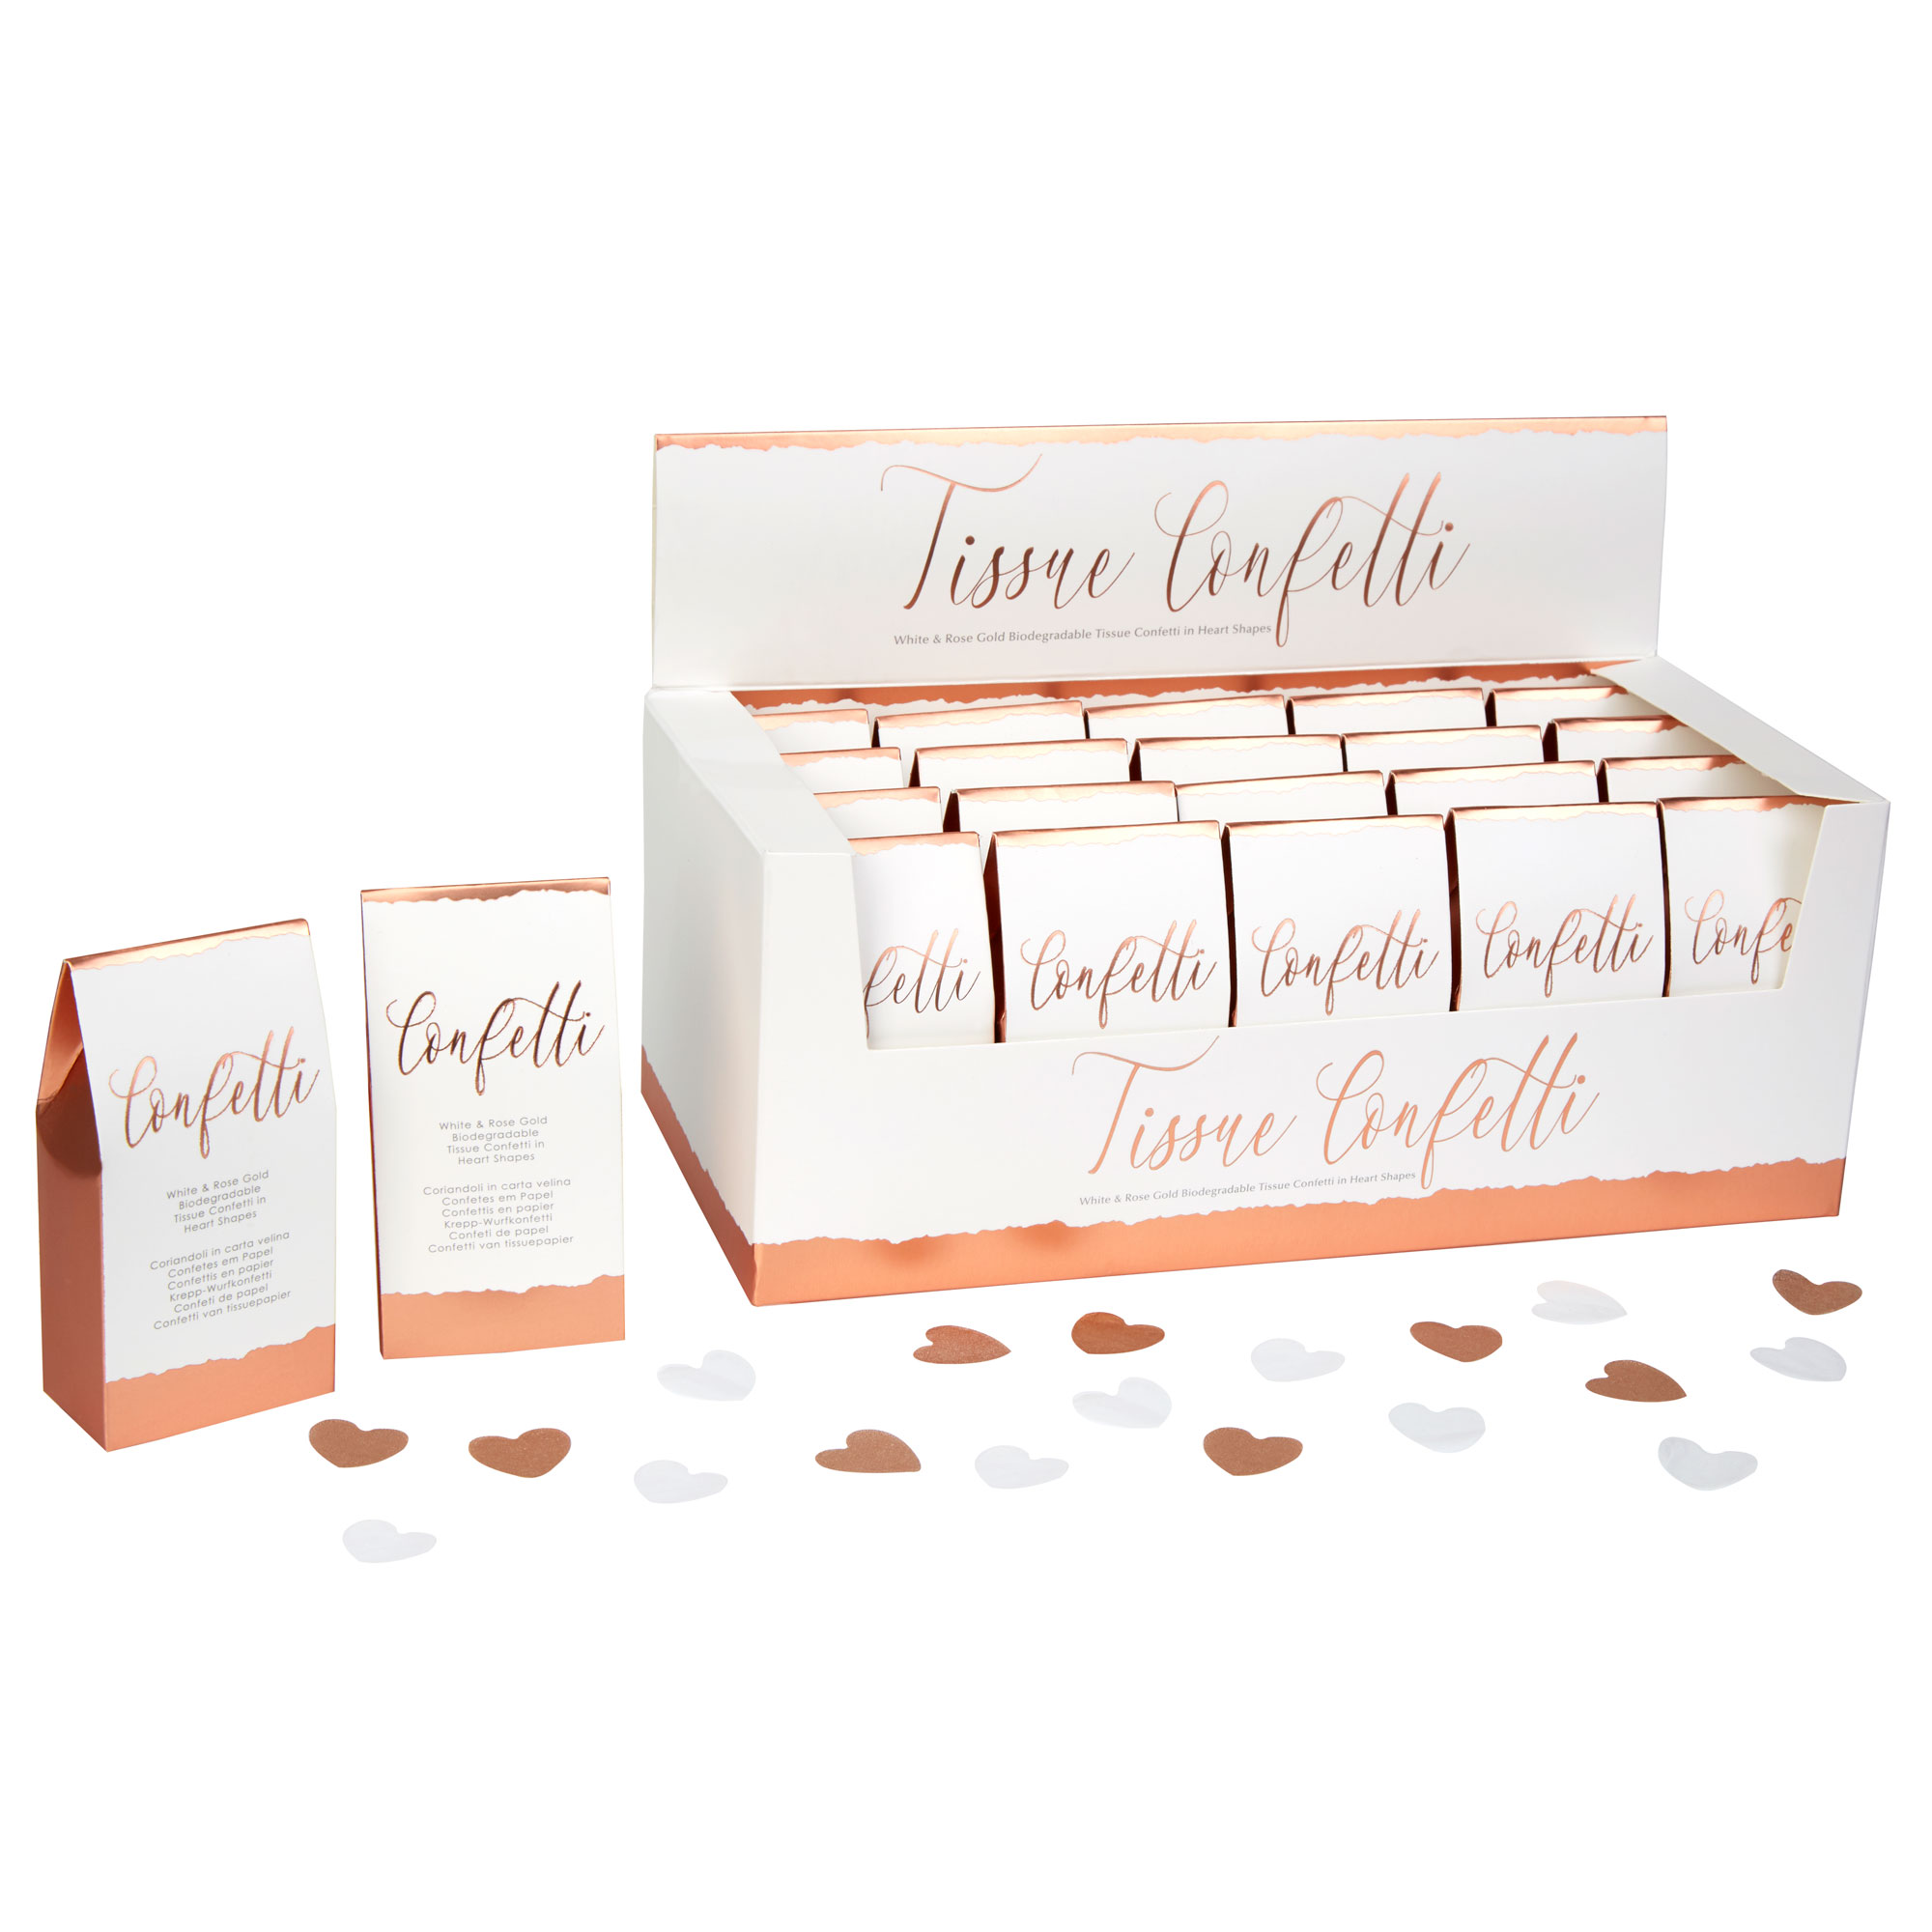 Neviti Dipped in Rose Gold - Tissue Confetti - 20 Pack